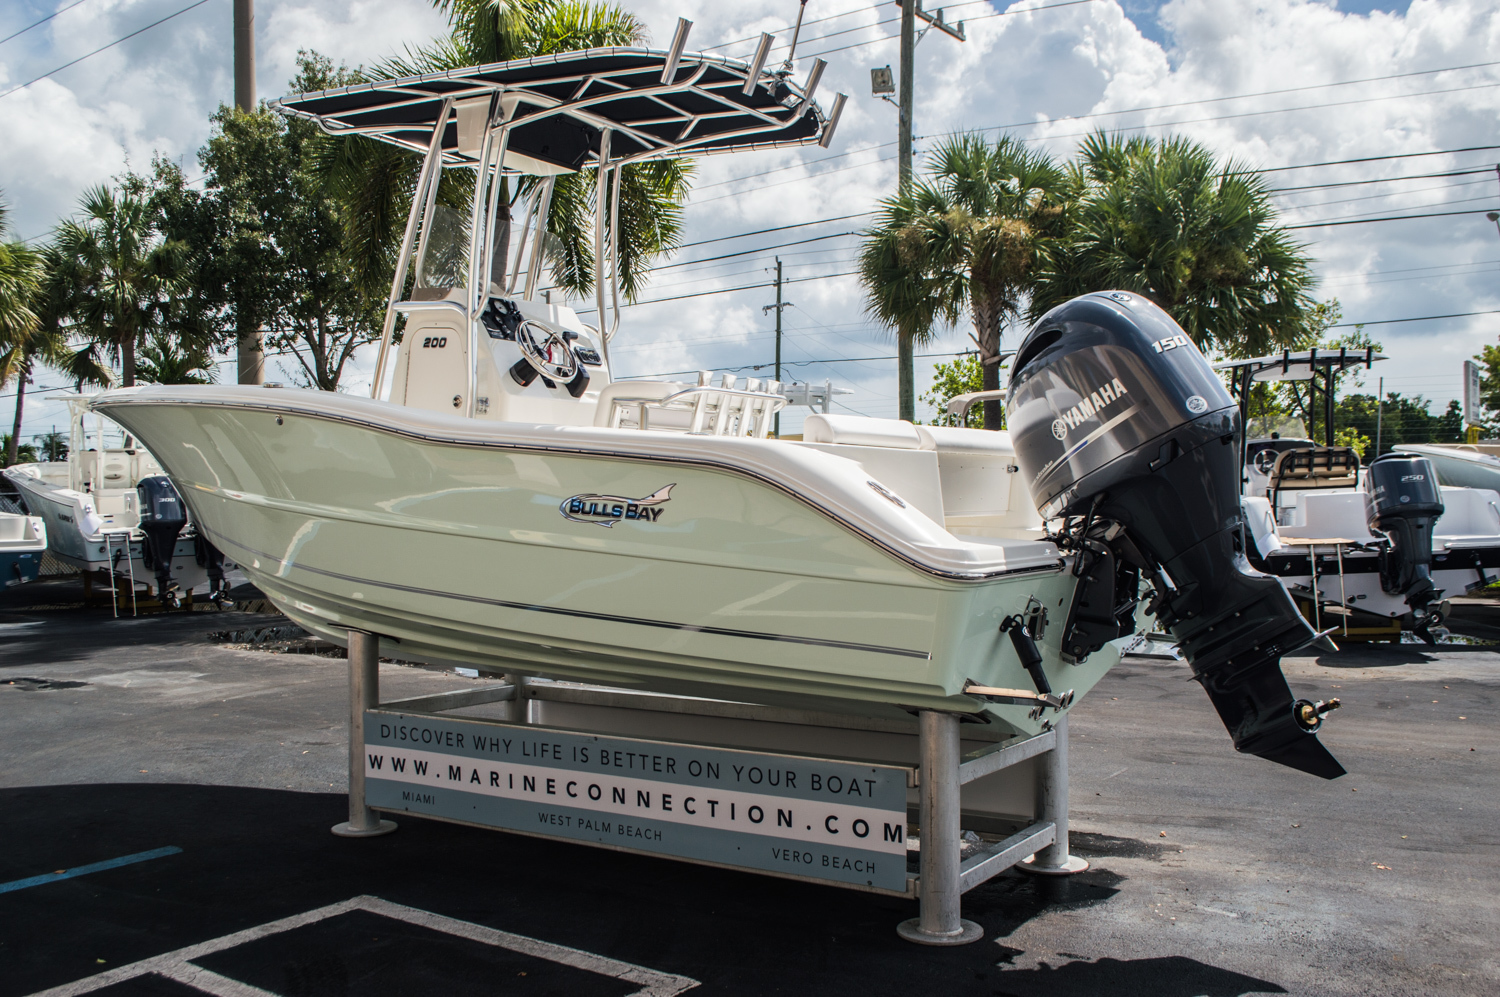 Thumbnail 5 for New 2016 Bulls Bay 200 CC Center Console boat for sale in Vero Beach, FL